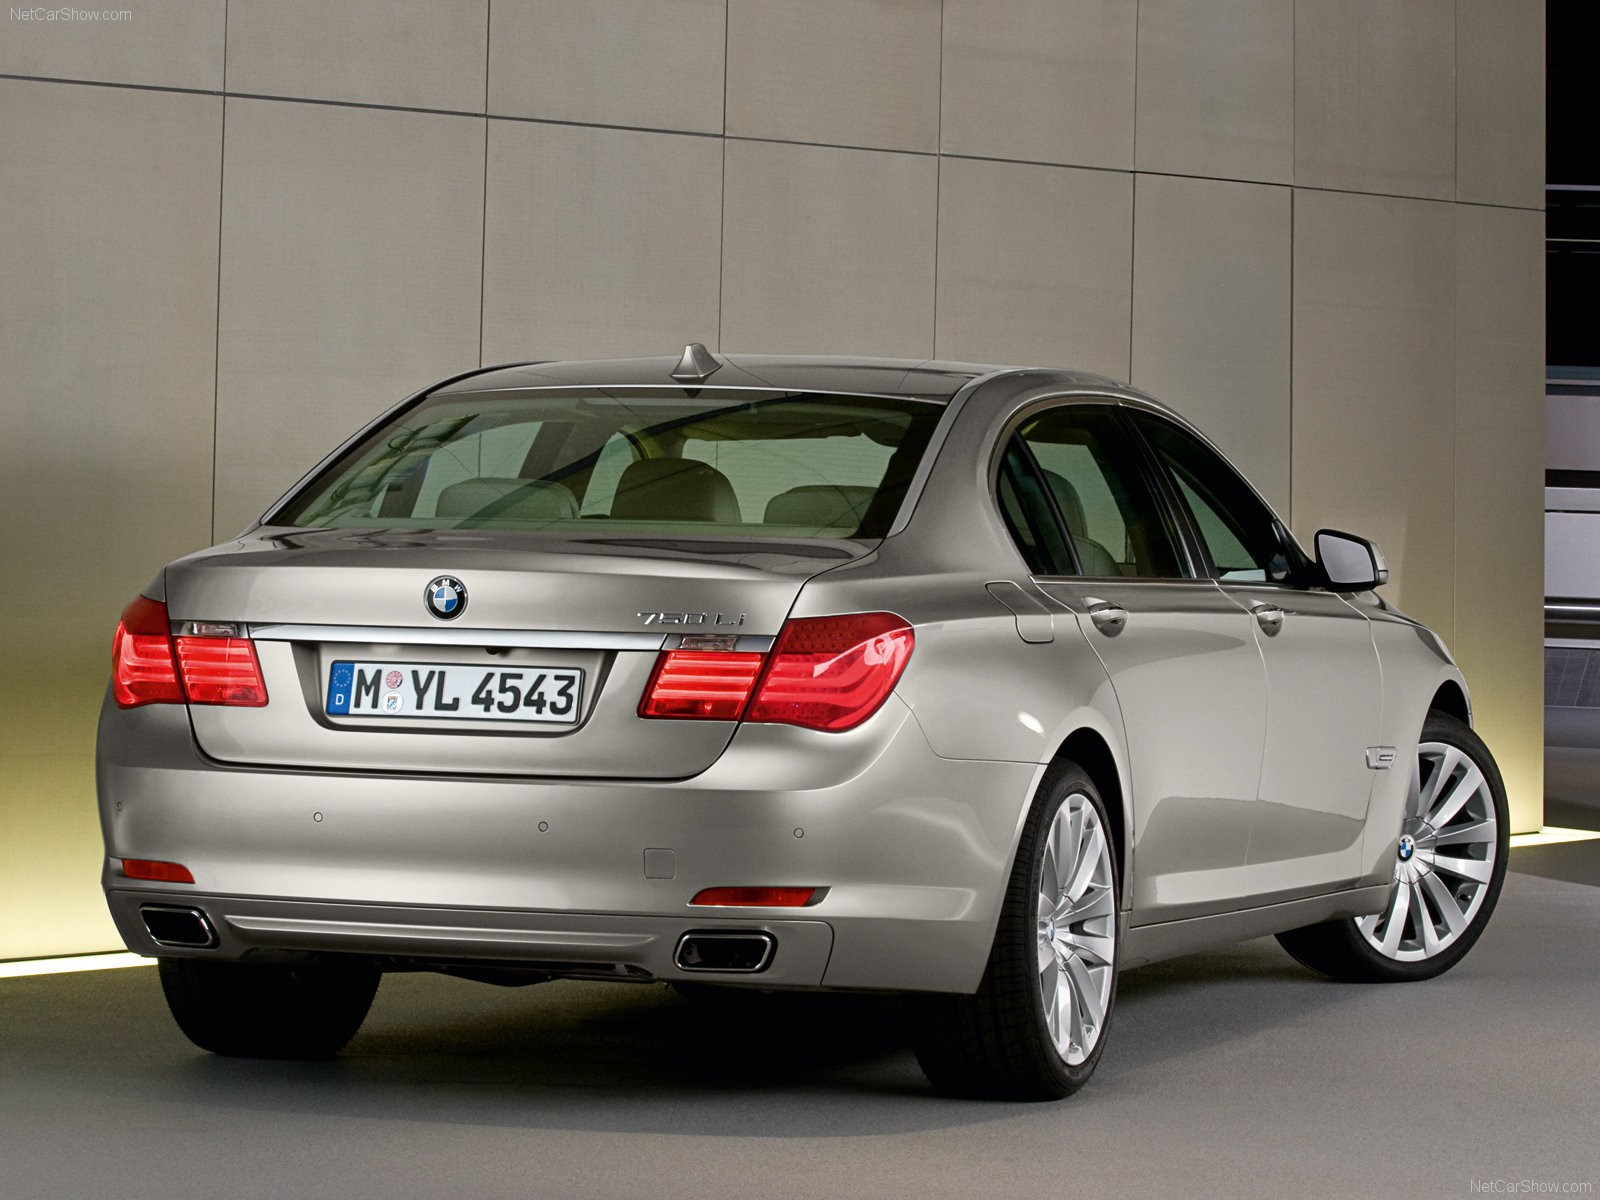 BMW 7-series F01 F02 picture # 62345 | BMW photo gallery ...